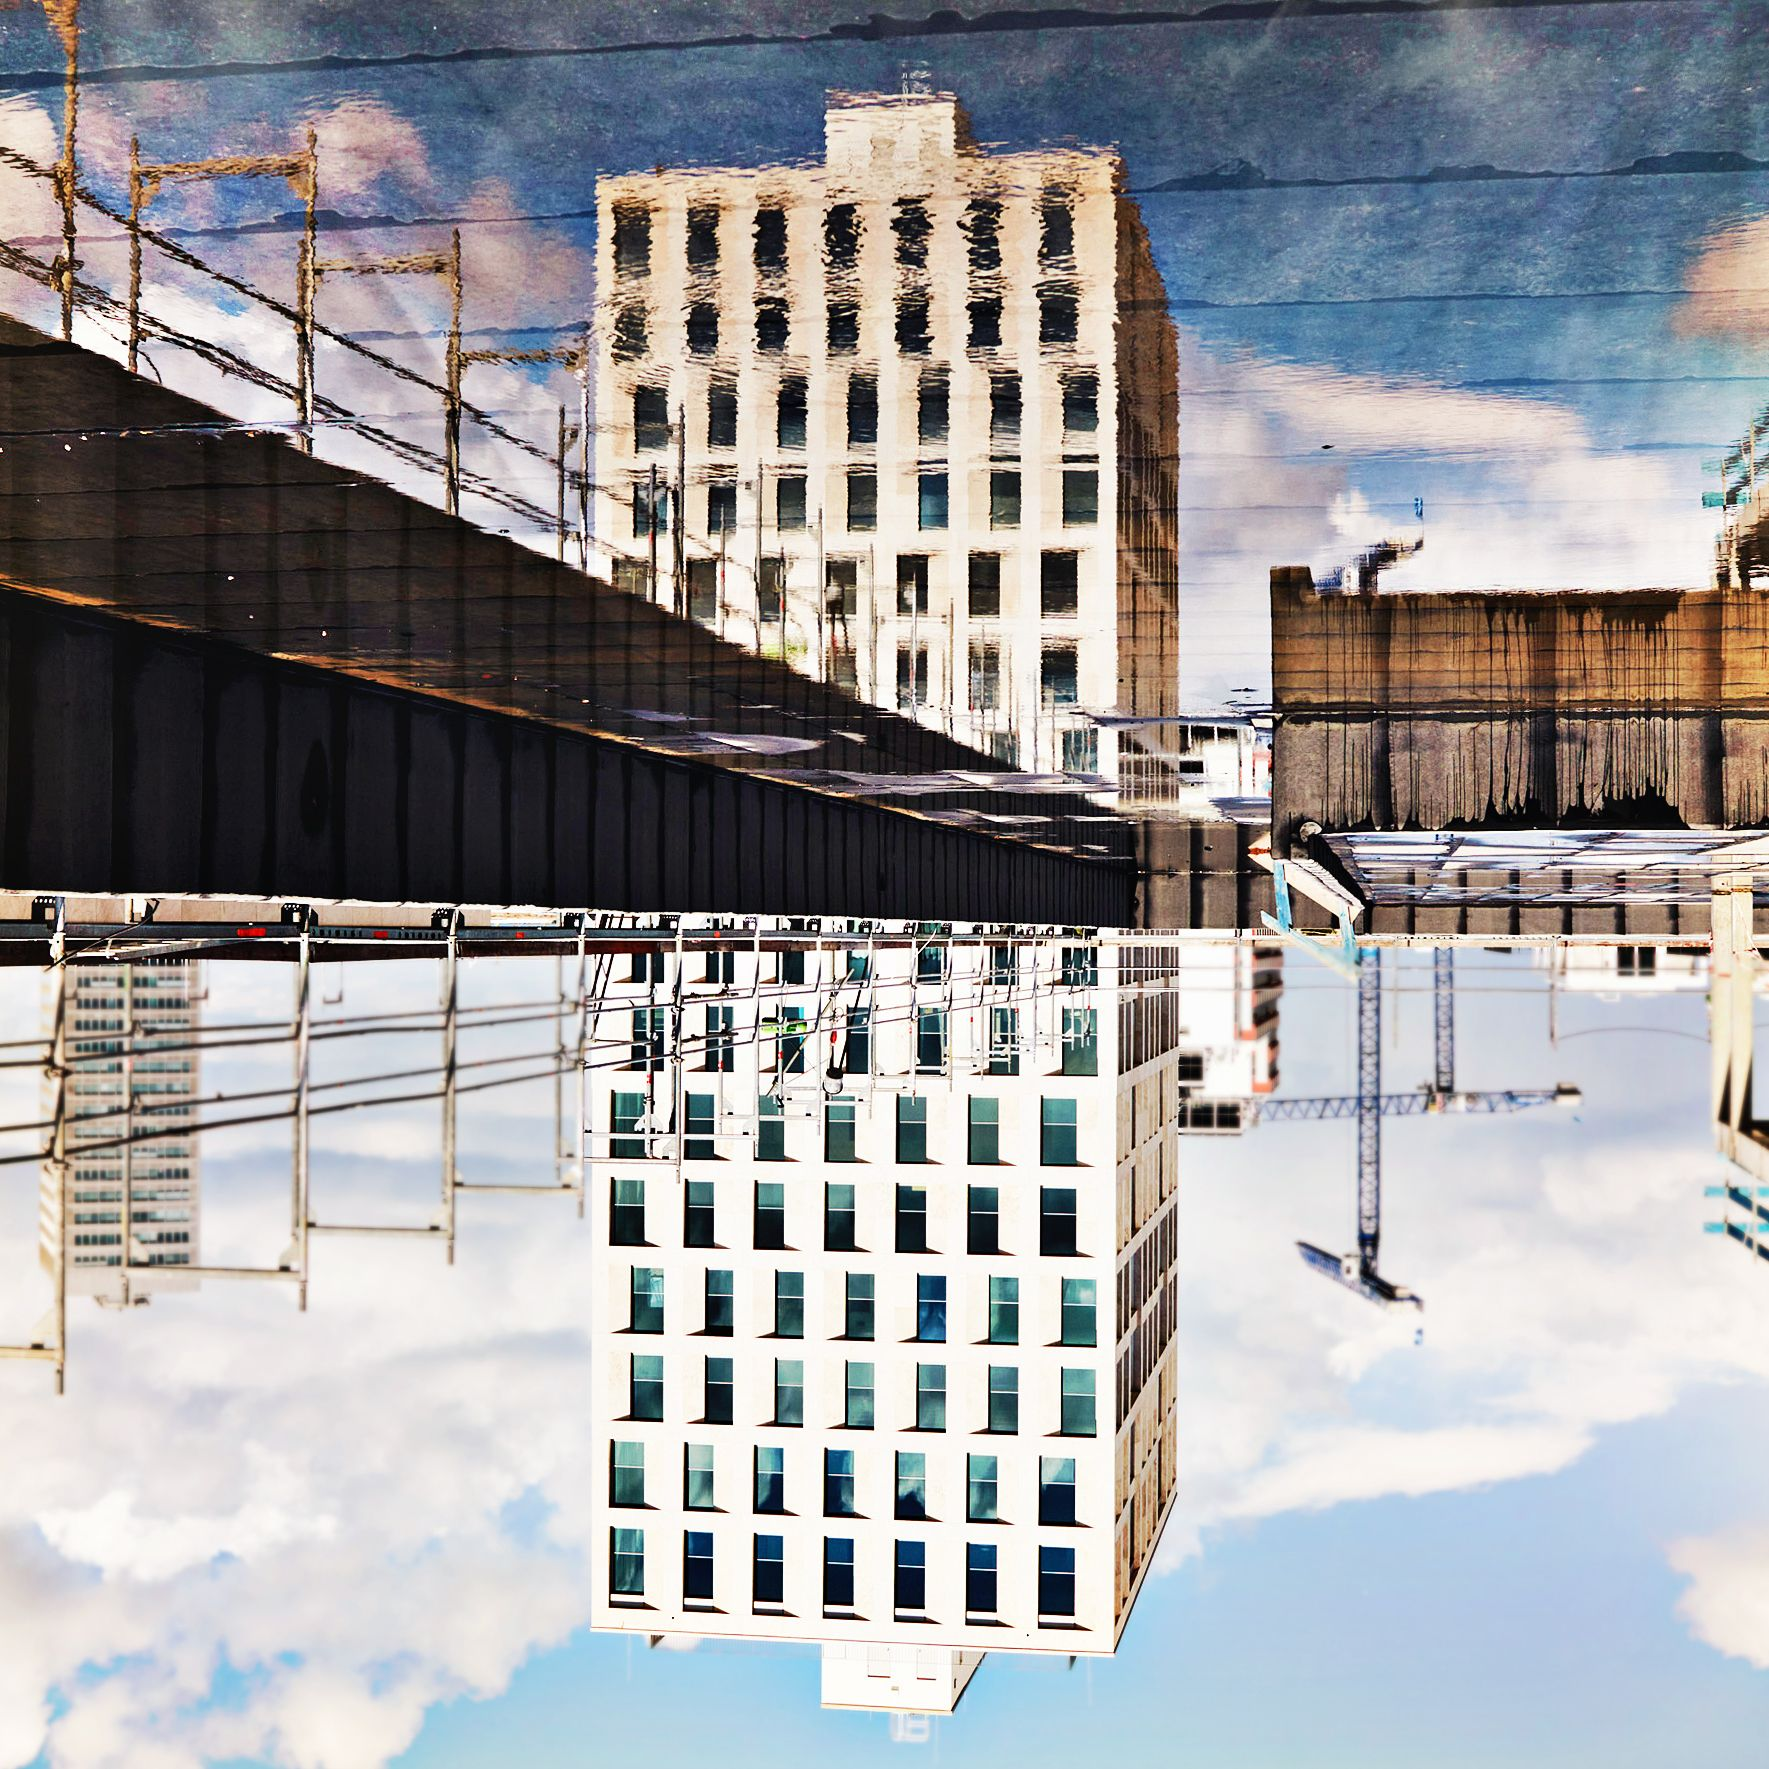 #upsidedownworld #SchwabingerTor #waterreflections #lightingmood #invertedworld #art #photography #architecture #constructionsite #mirroring #cityparadise #urbanart #dreamworld #waterinthesky #maxdudler #pictureoftheday #munichliving #urban #TalenteTeilenToleranz #innovation #munich #sky #weloveschwabing #münchenarchitektur #leopoldstrasse